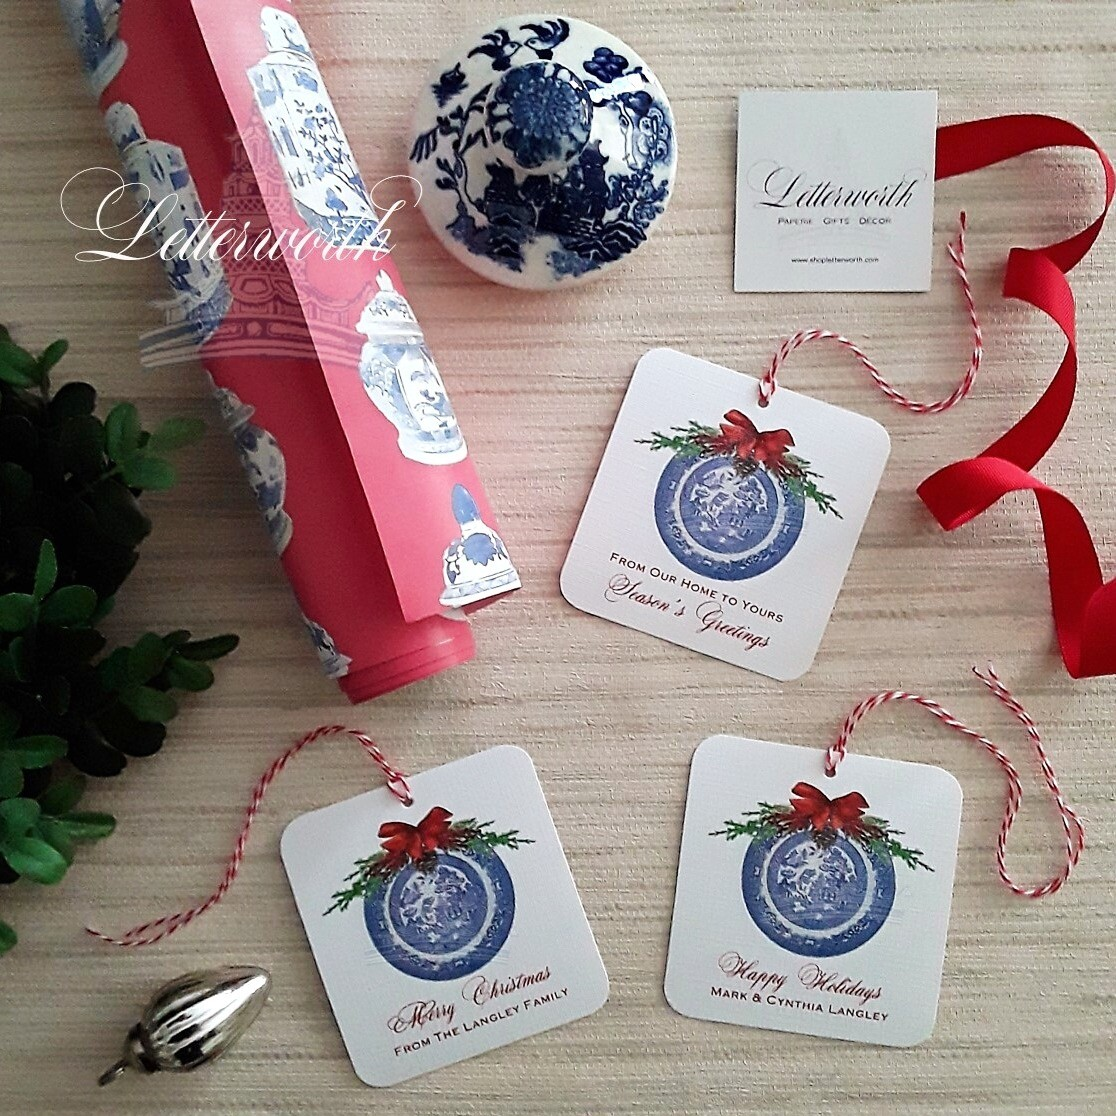 Blue Willow Holiday Gift Tags by Letterworth (Set of 12)